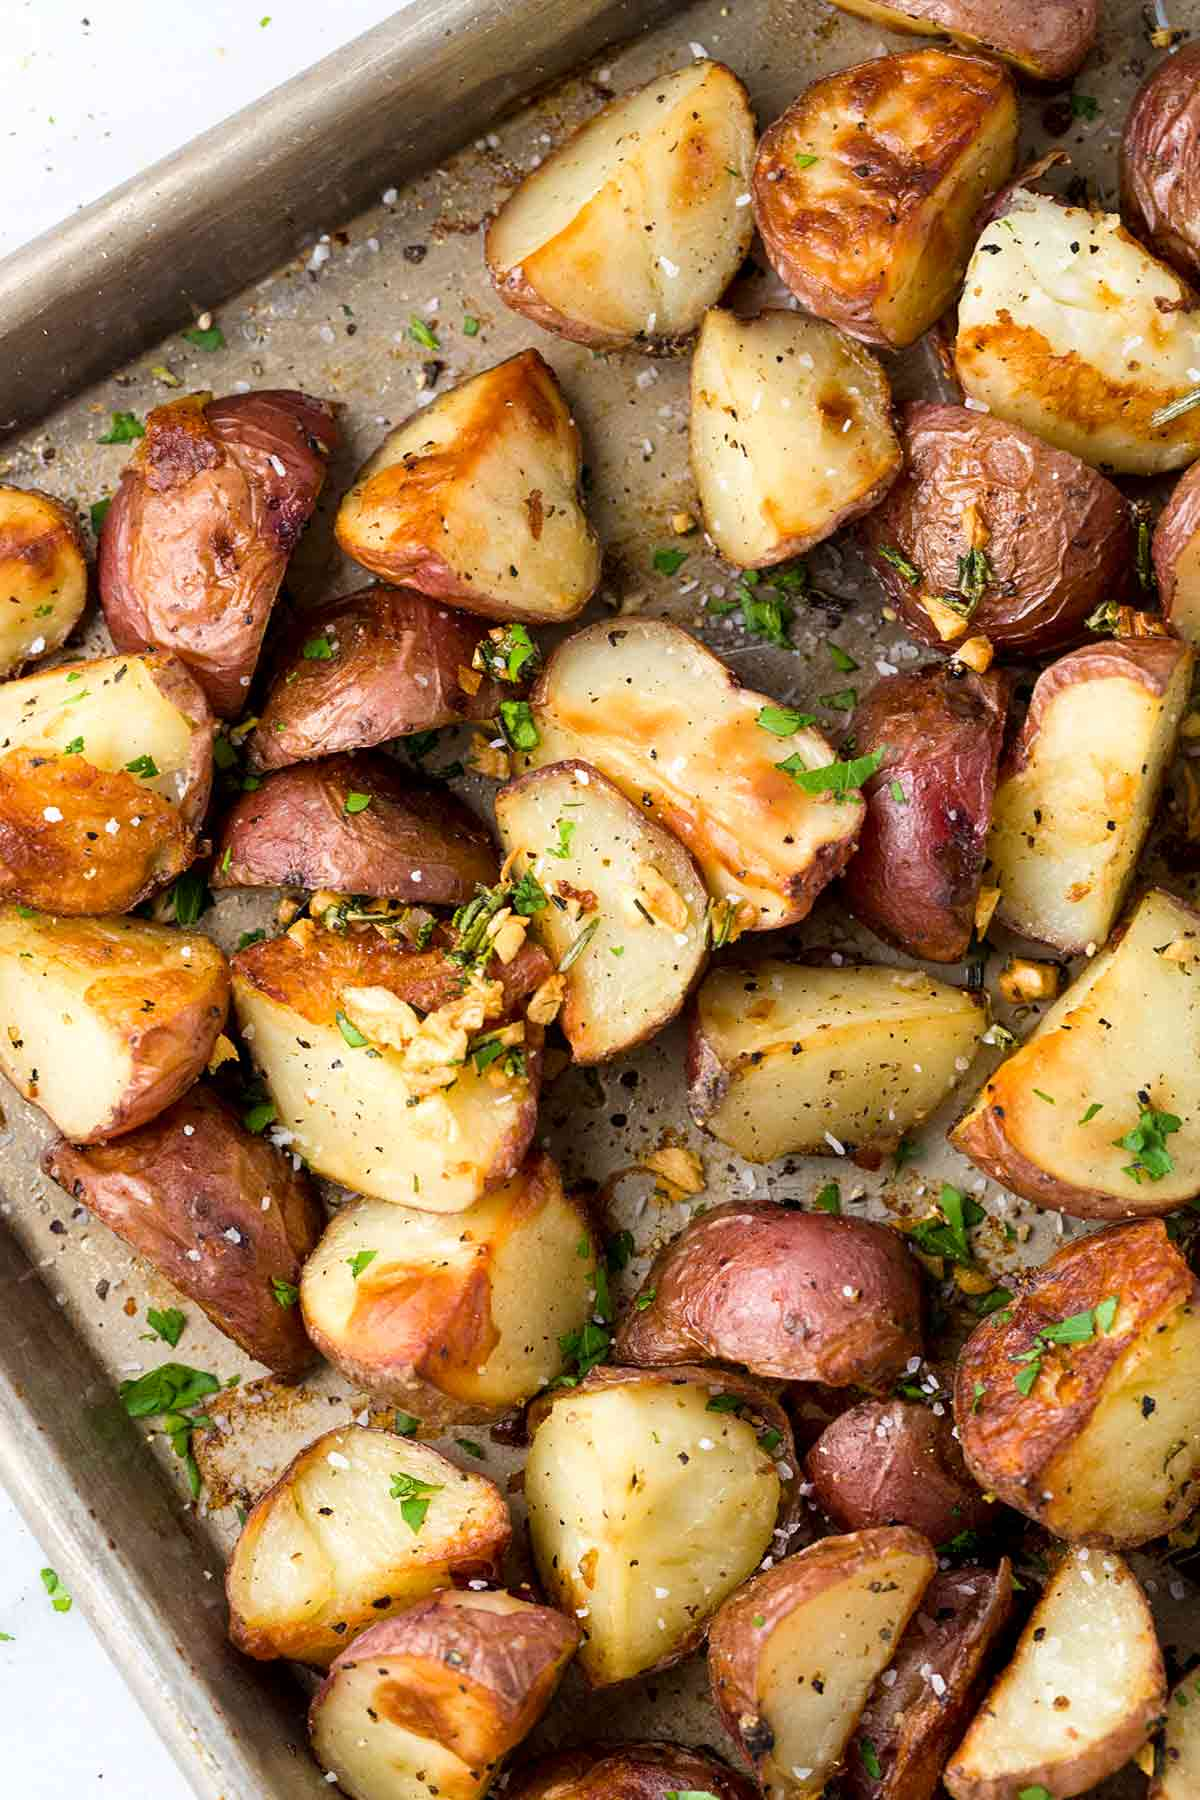 Garlic Roasted Potatoes with Rosemary | Jessica Gavin